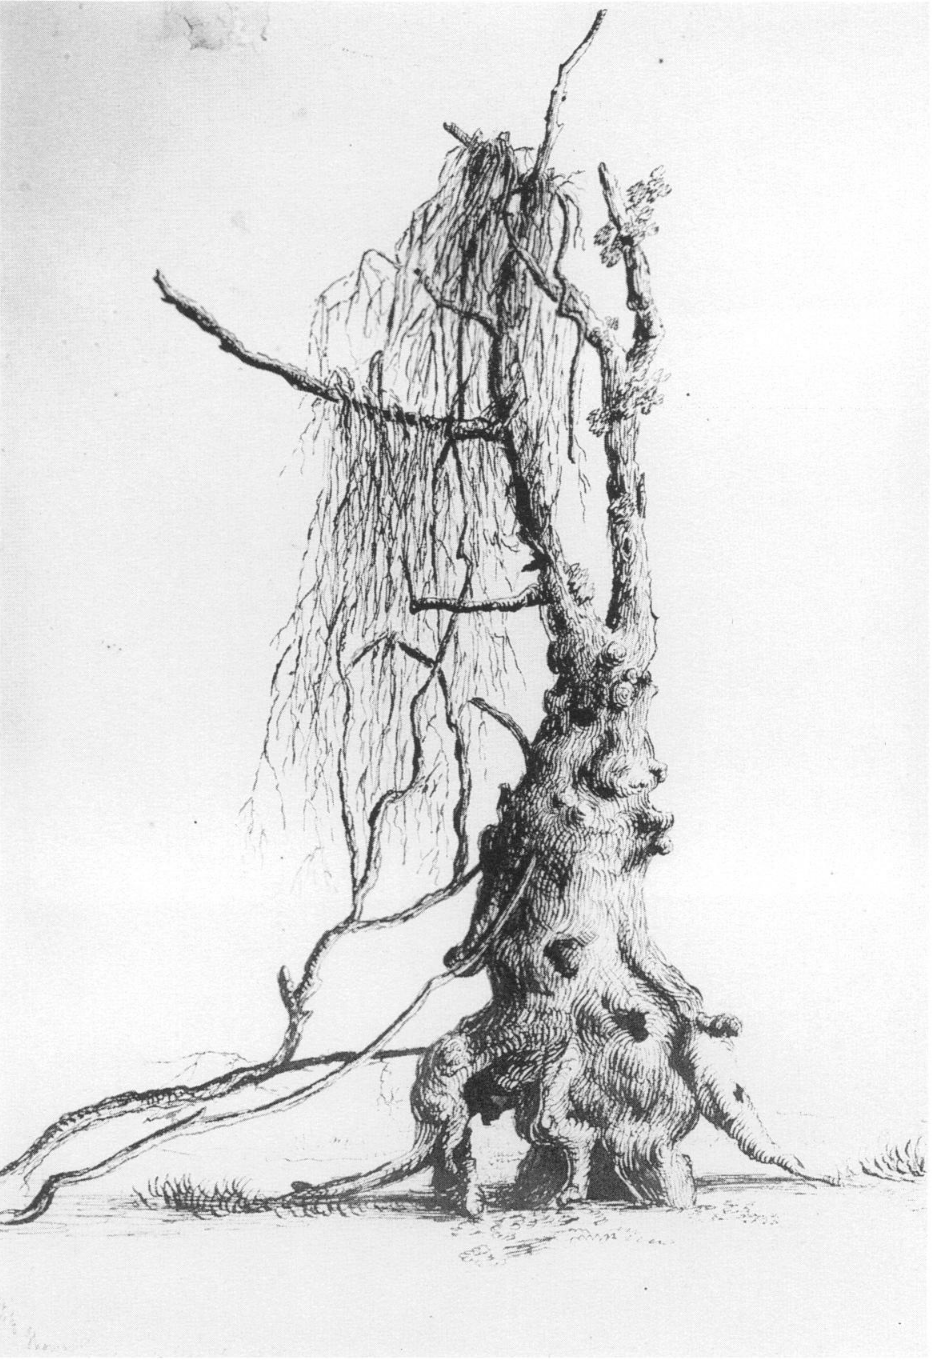 "© Thomas Cole. BUTTON WOOD TREE. May 16, 1823. Graphite and pen and brown ink on tan paper, 13 1/2 x 16 7/8"". Collection, Albany Institute of History & Art, Gift of Florence Cole Vincent.  From: Felker, Tracie. ""First Impressions: Thomas Cole's Drawings of His 1825 Trip up the Hudson River.""  American Art Journal , vol. 24, no. 1/2, 1992, pp. 60–93.  JSTOR , www.jstor.org/stable/1594588."